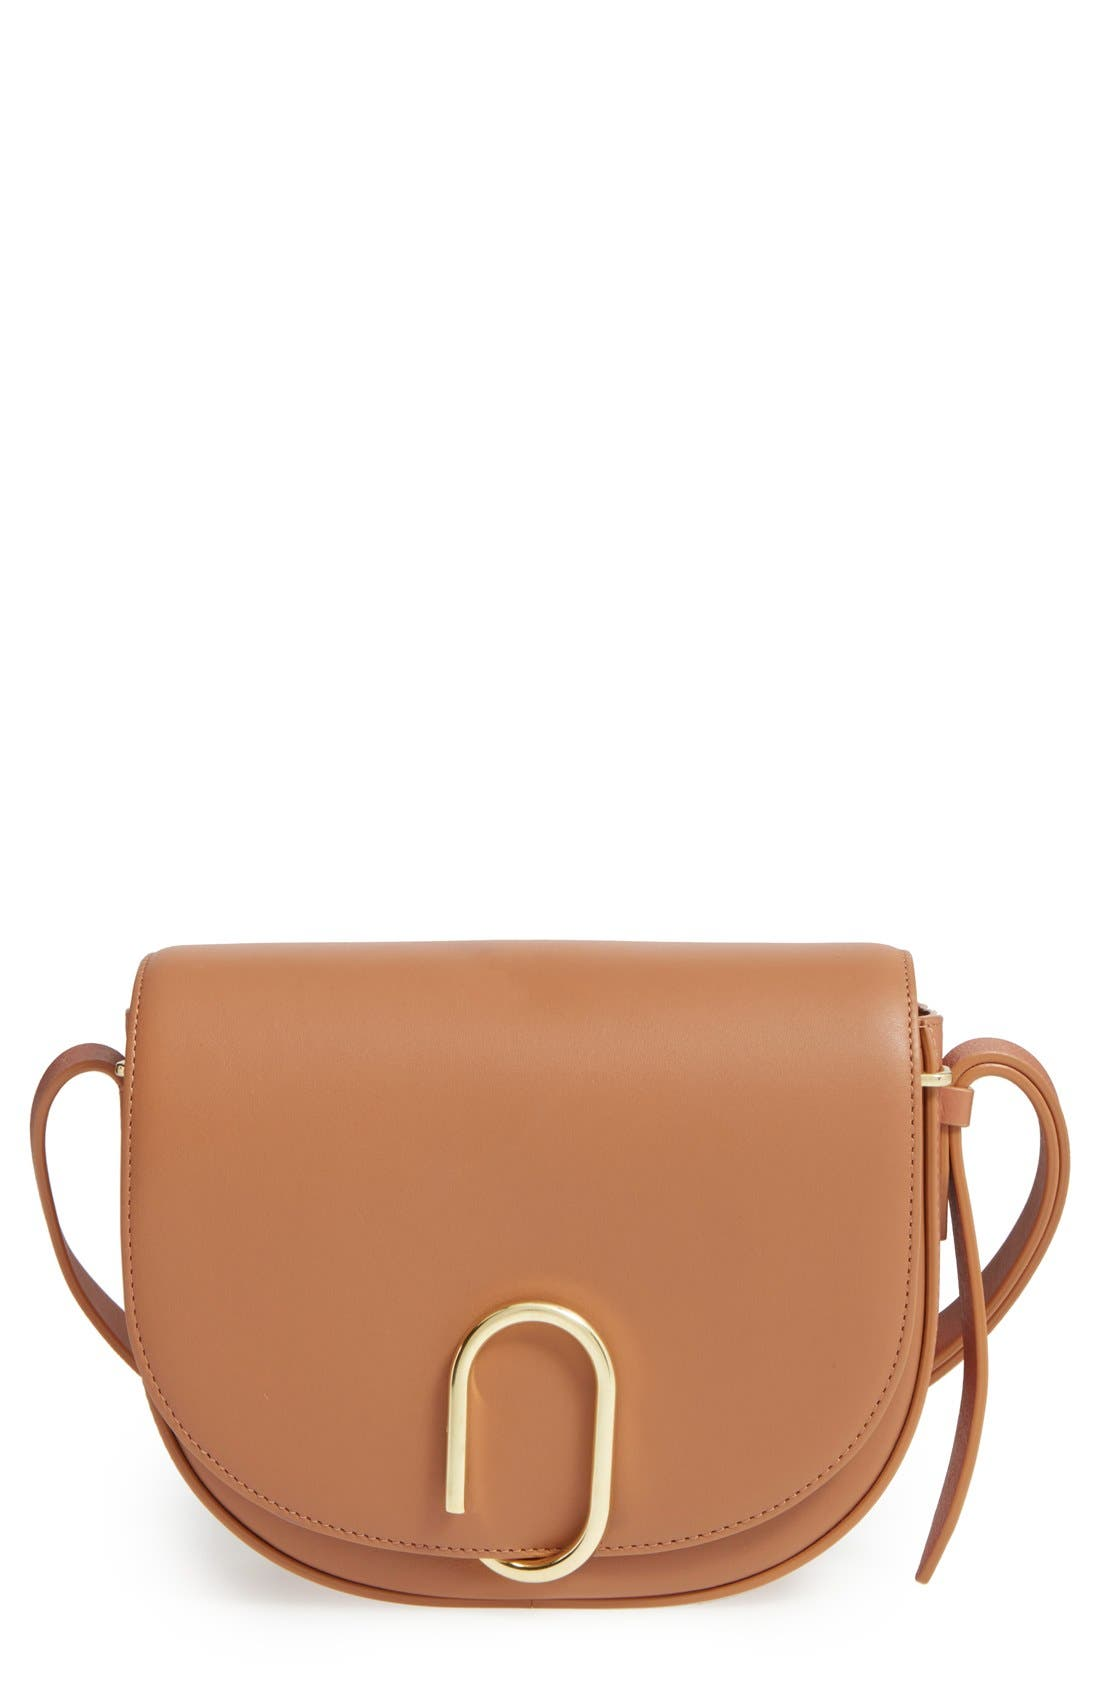 Main Image - 3.1 Phillip Lim Alix Leather Saddle Bag